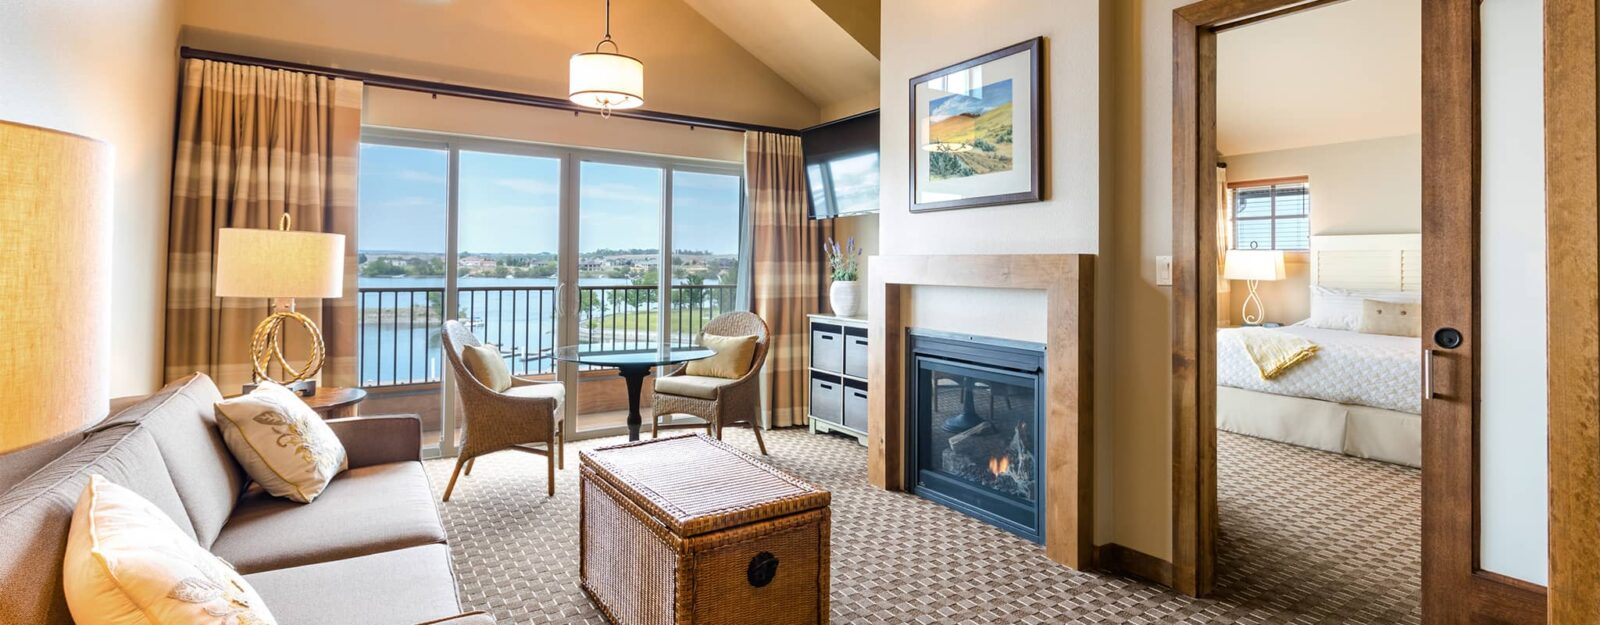 Guestrooms at the Lodge in Richland